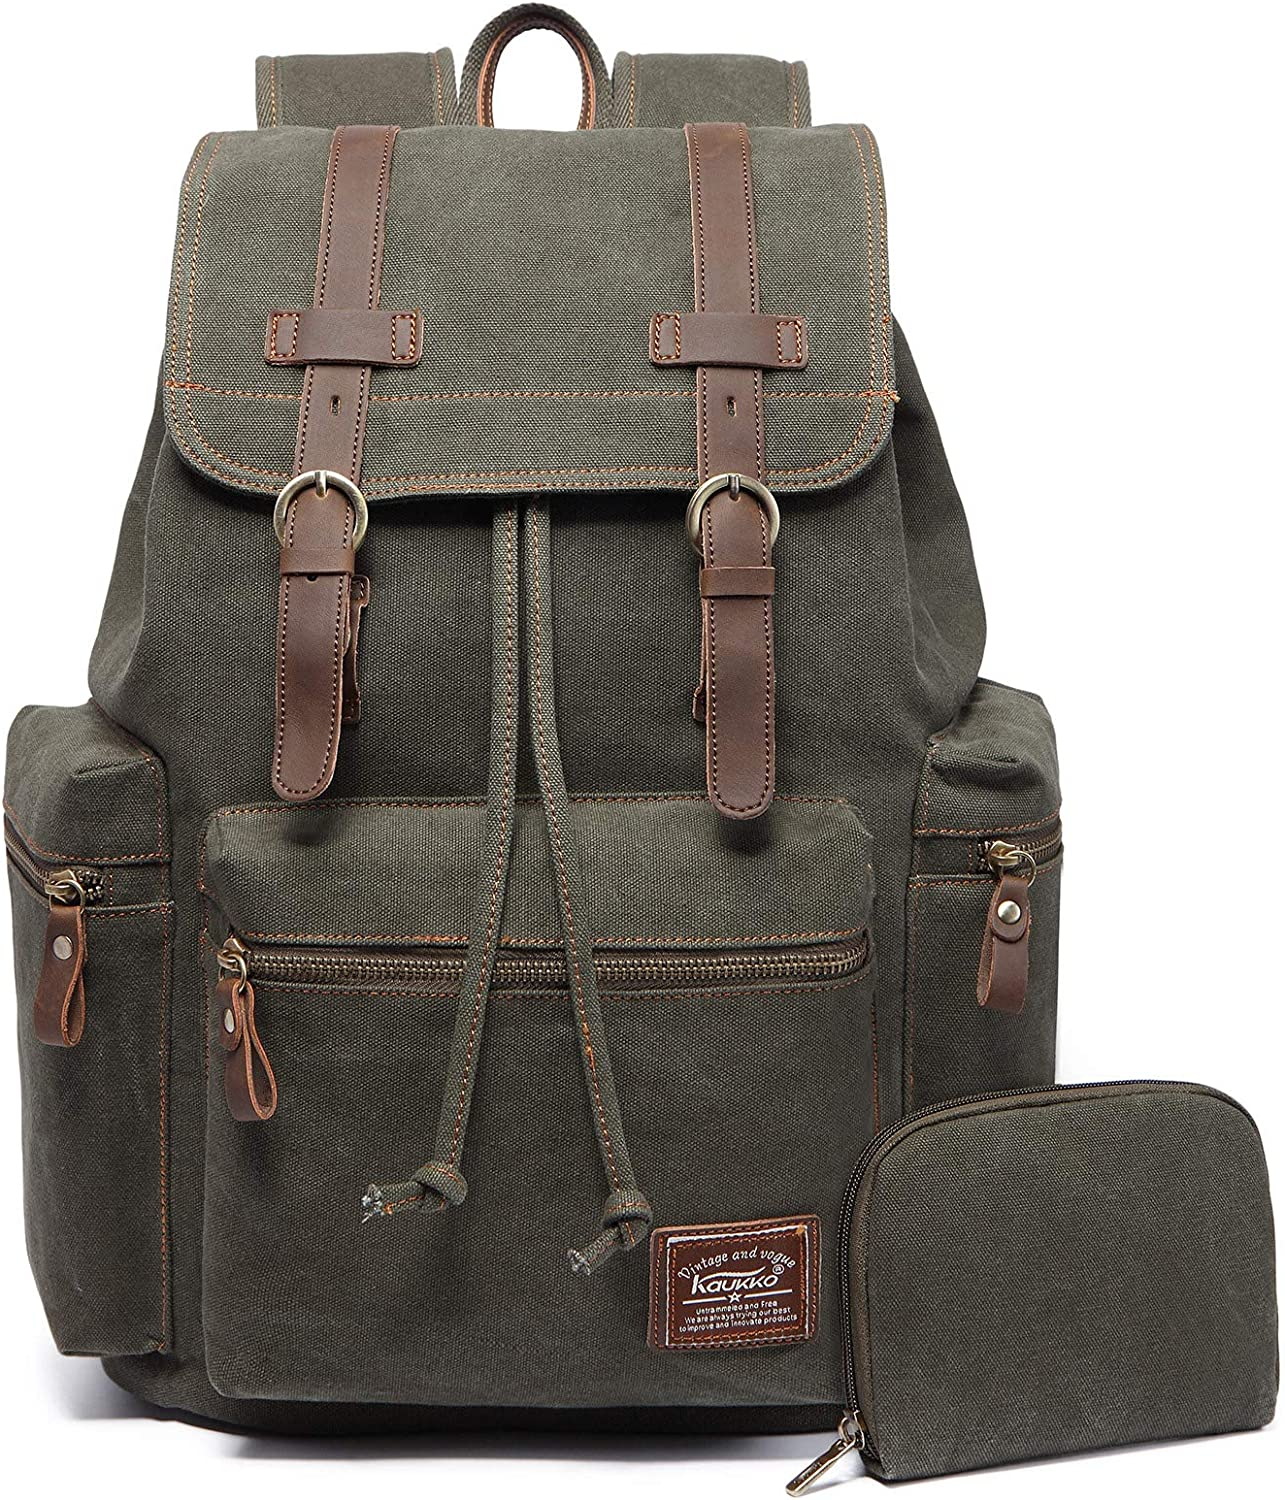 KAUKKO Vintage Casual Canvas and Leather Rucksack Backpack